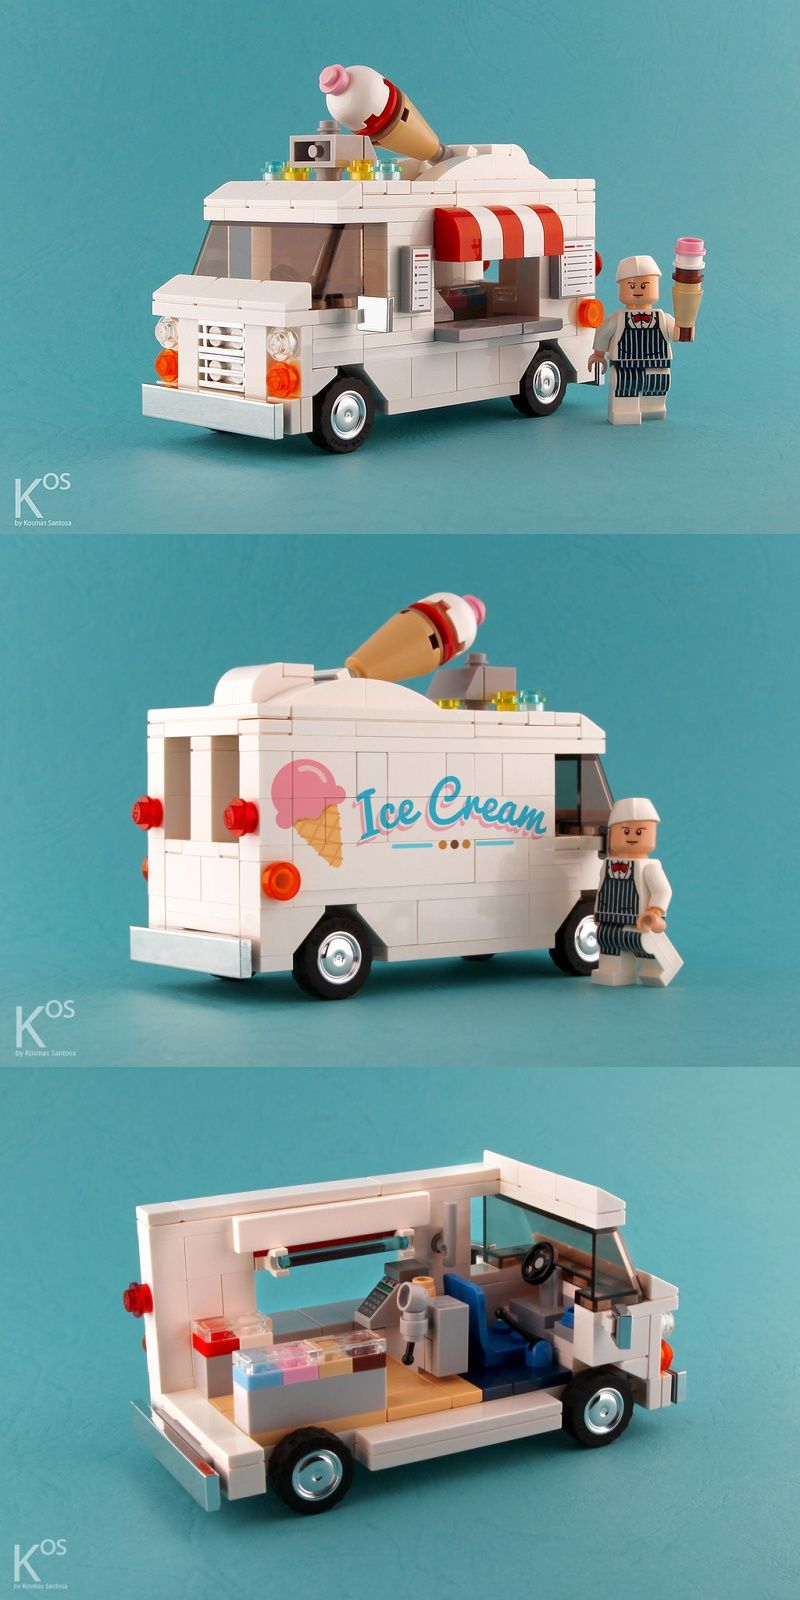 Ice Cream Truck   Want Some    LEGO   Pinterest   Ice cream van     Ice Cream Van   Want Some